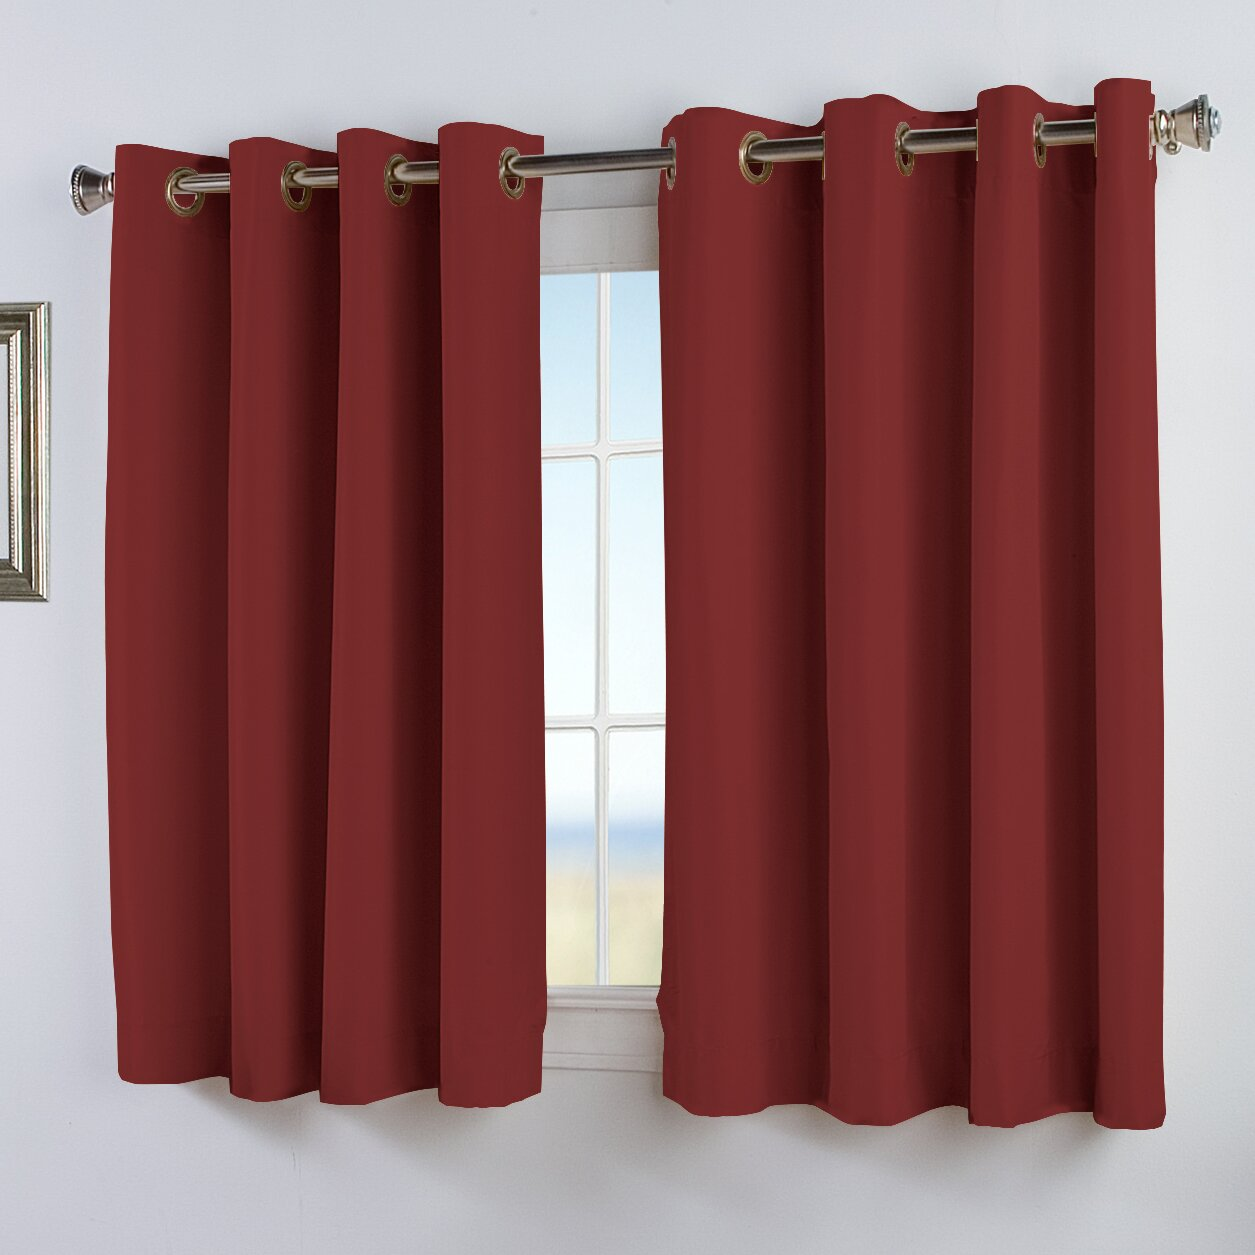 Ricardo Trading Elegance Insulated Solid Blackout Thermal Grommet Single Curtain Panel Reviews